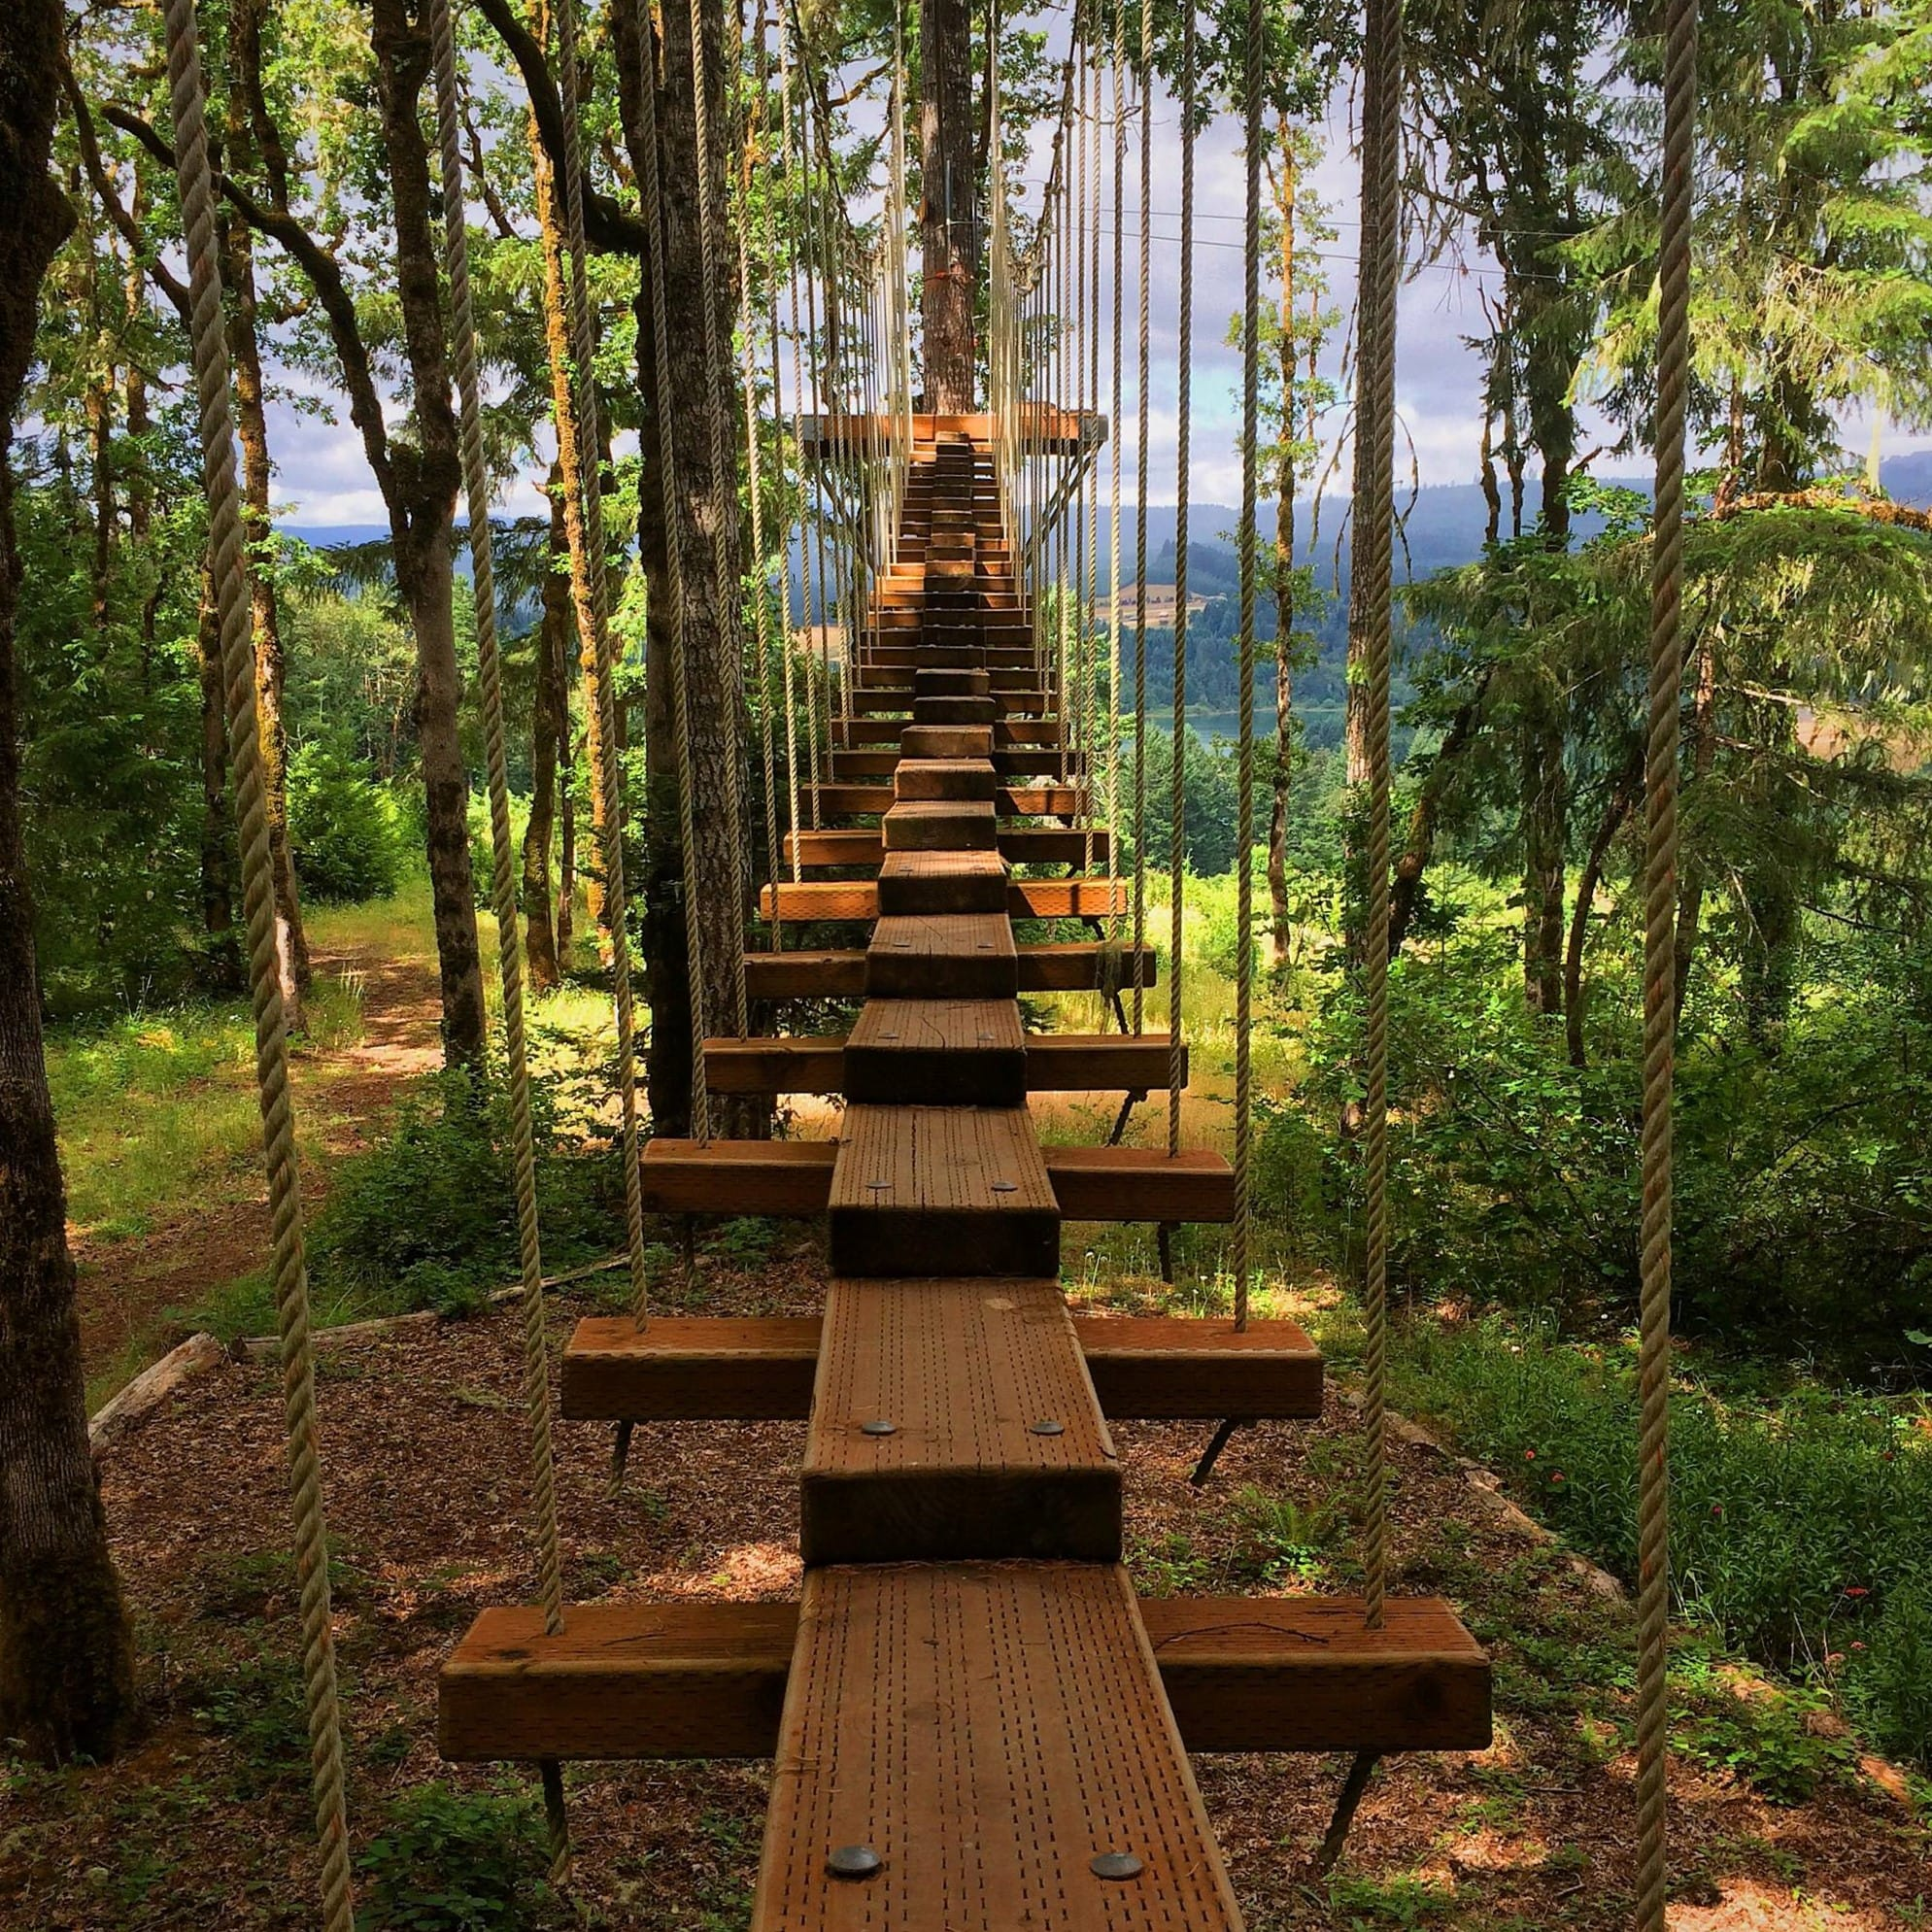 High Ropes Course Bridge - Tree to Tree Adventure Park